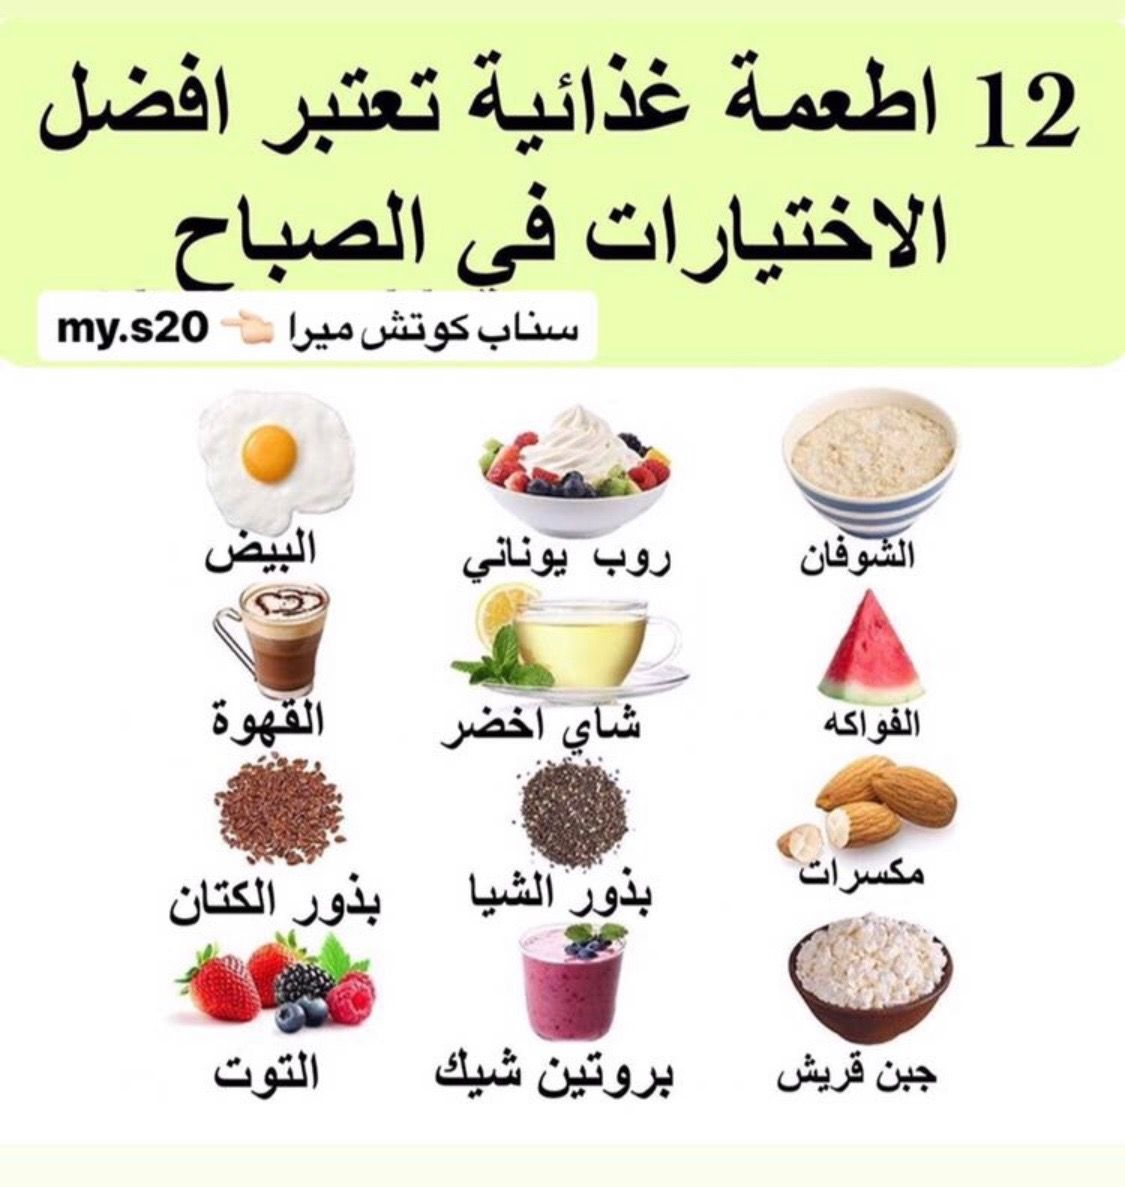 Pin By Heather On Healthylivingplan Health Fitness Food Health Facts Food Health Facts Fitness